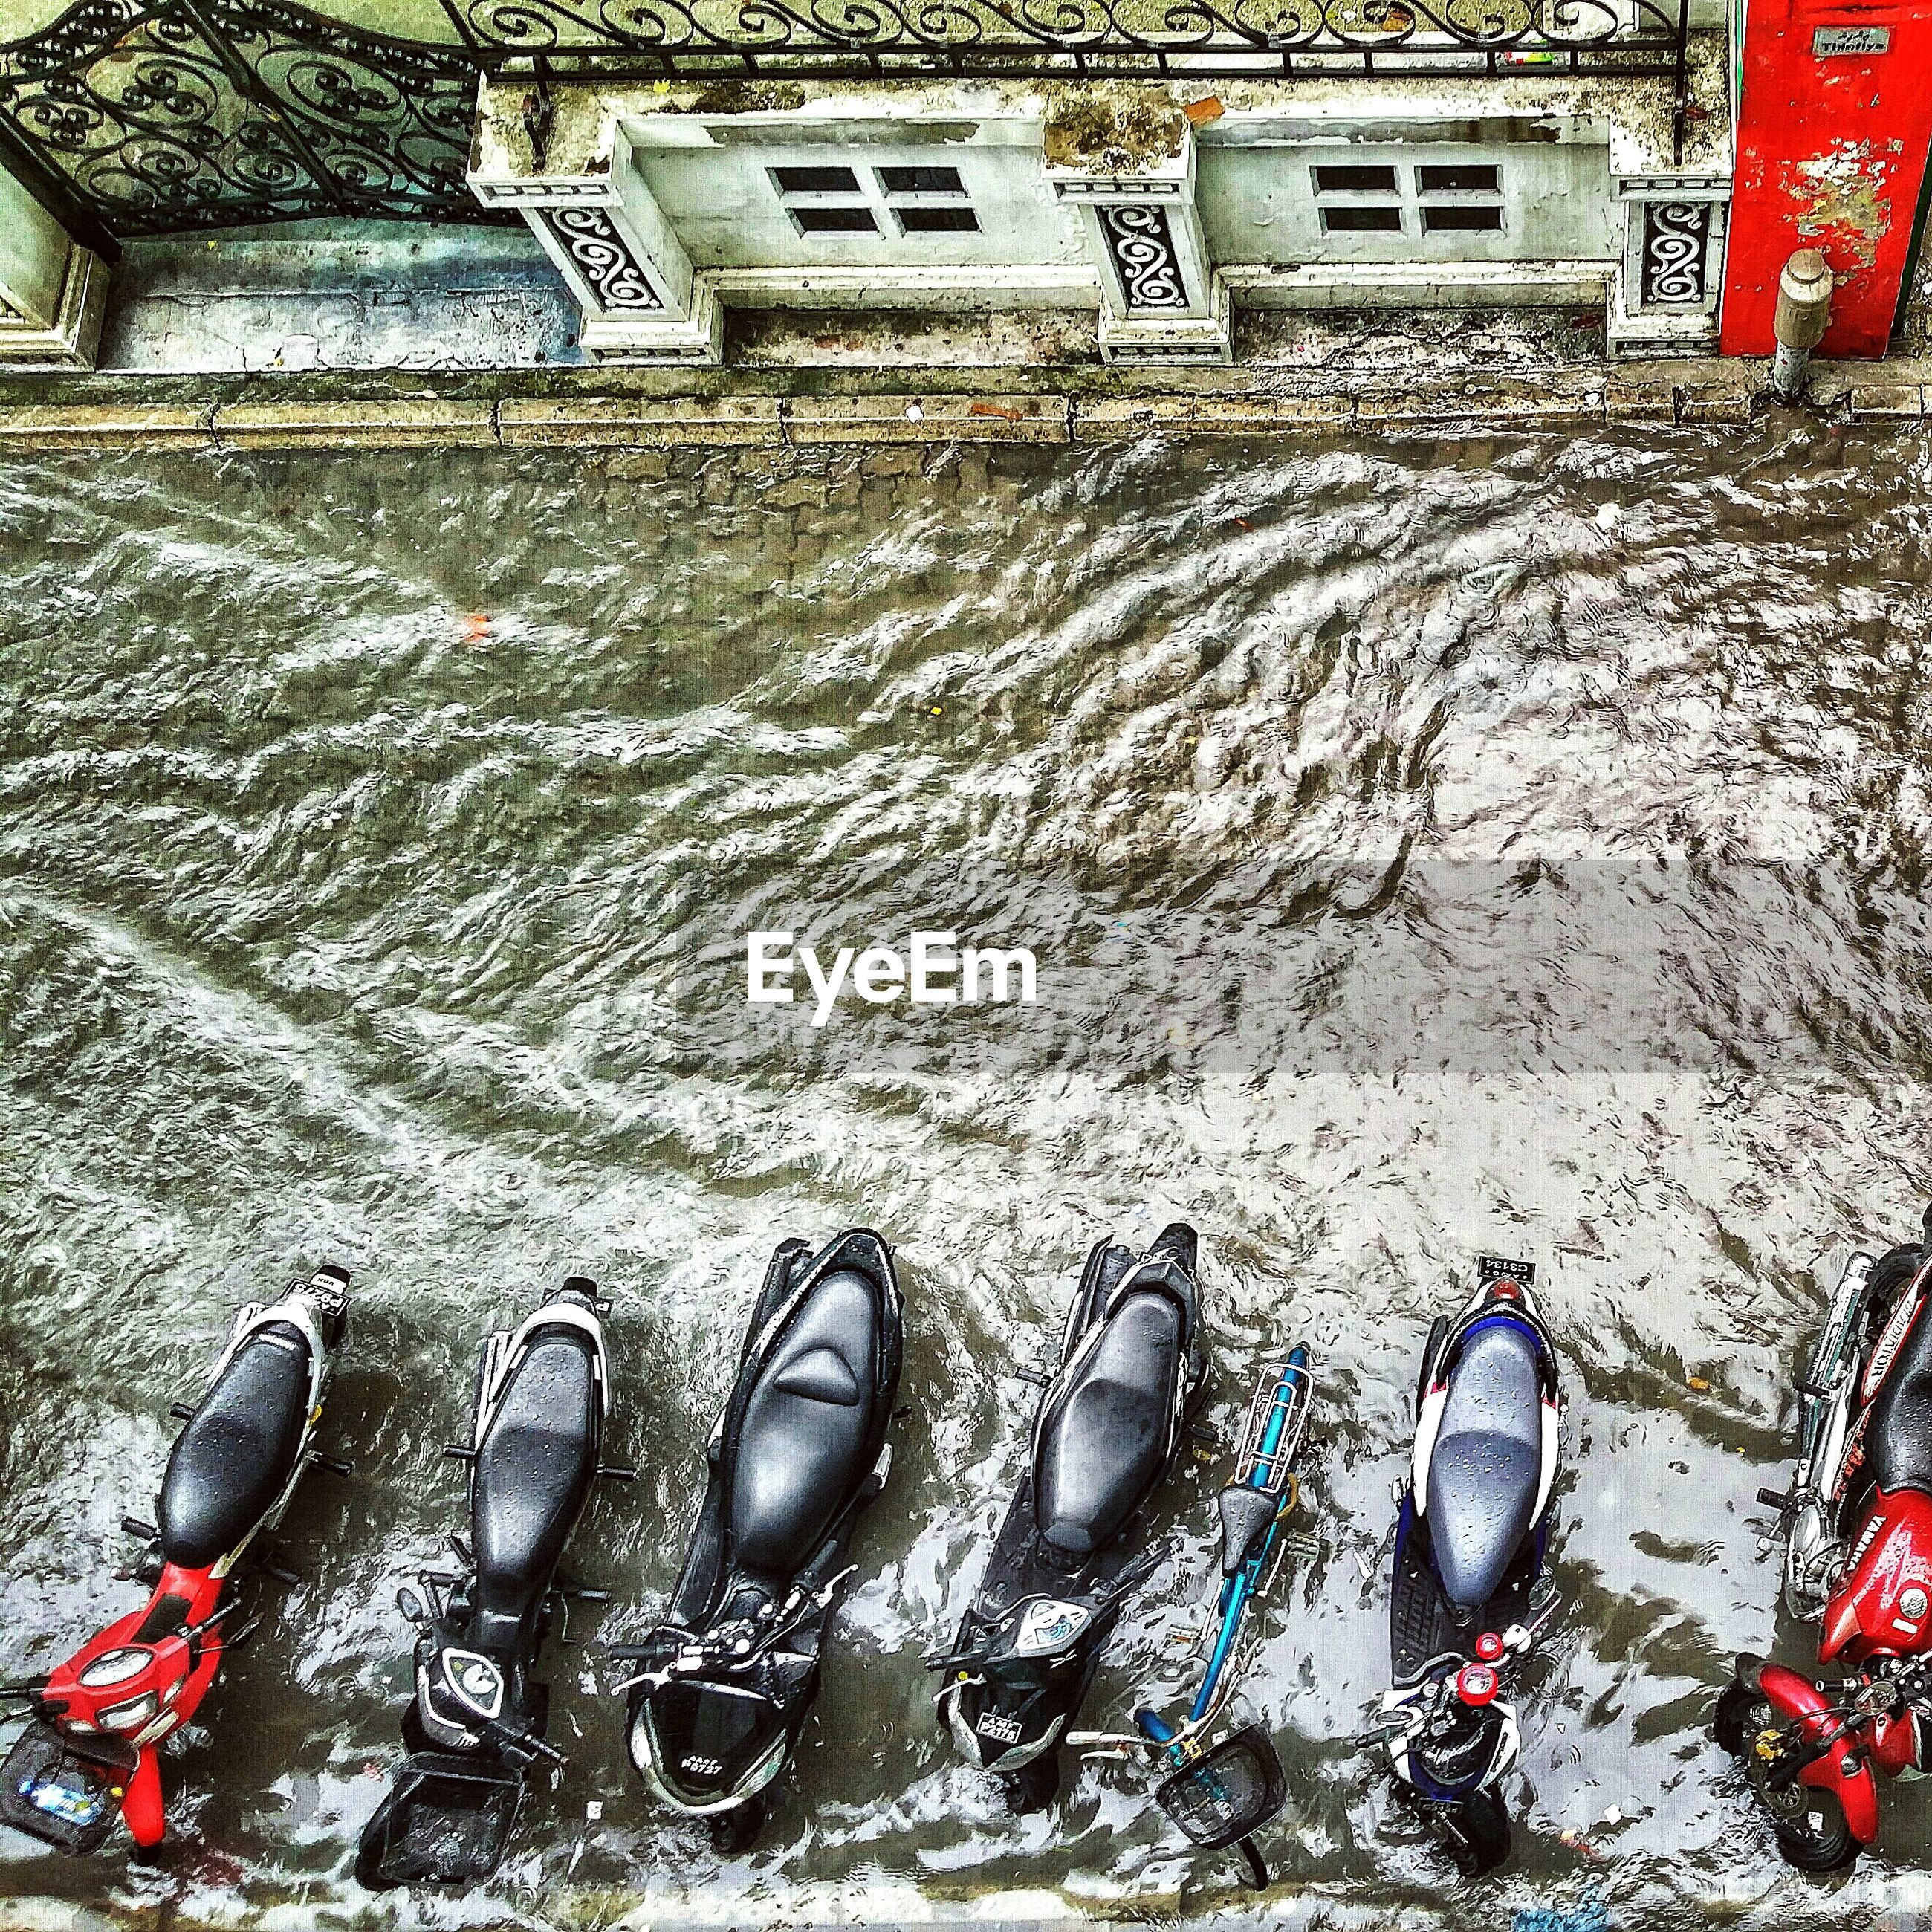 Motorcycles parked on flooded road